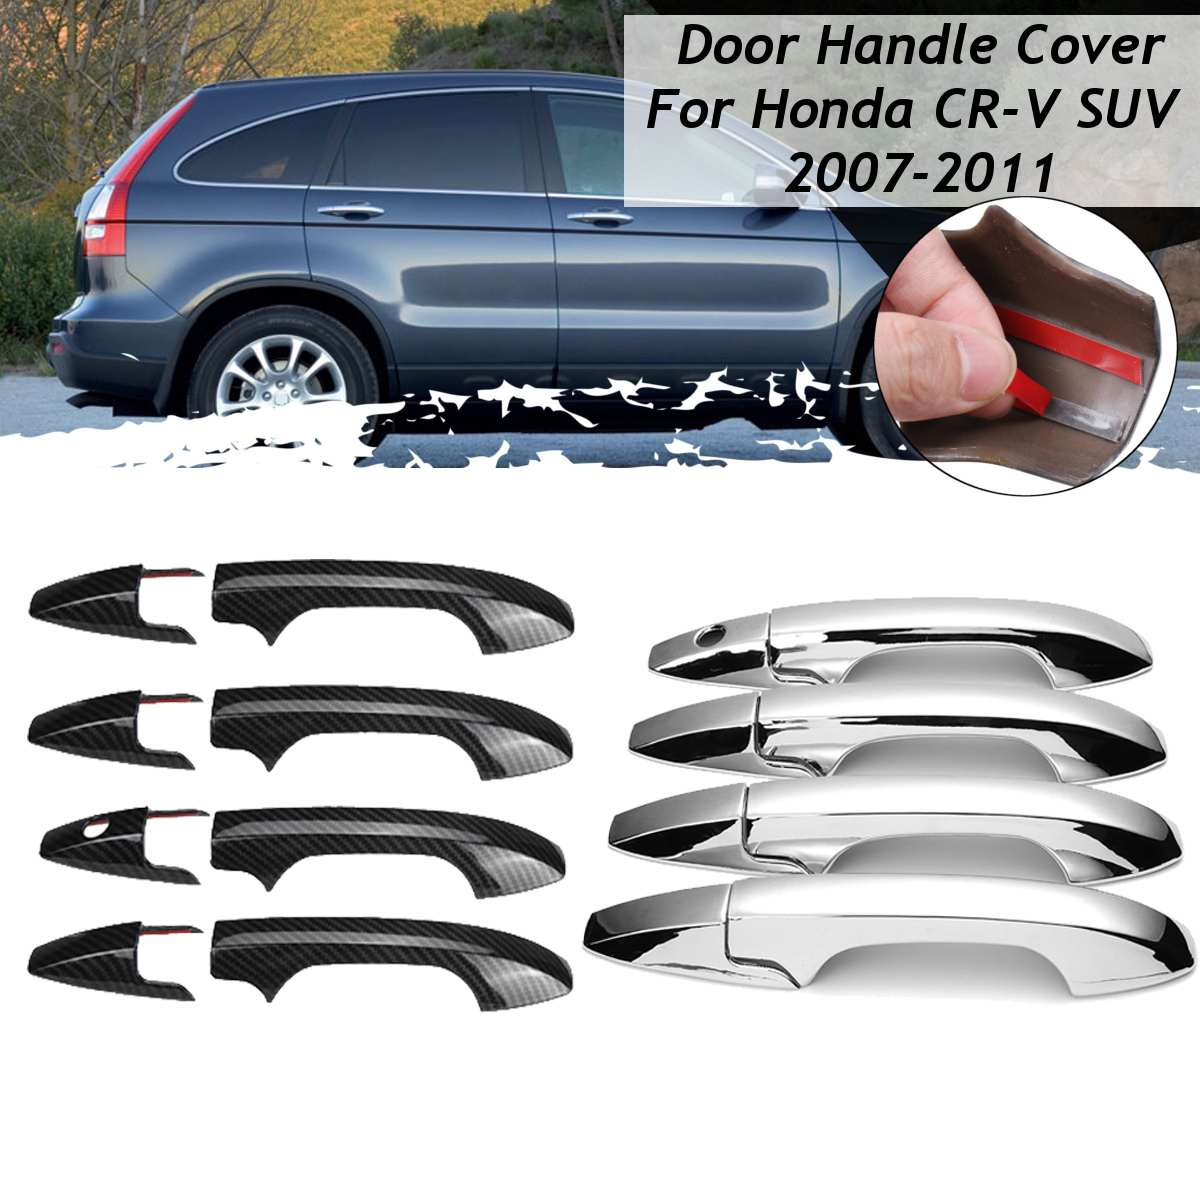 3 Colors Car Door Handle Frame Sticker For Honda CR-V CRV SUV 2007 2008 2009 2010 2011 Car Styling Chrome Carbon Cover Catch Cap